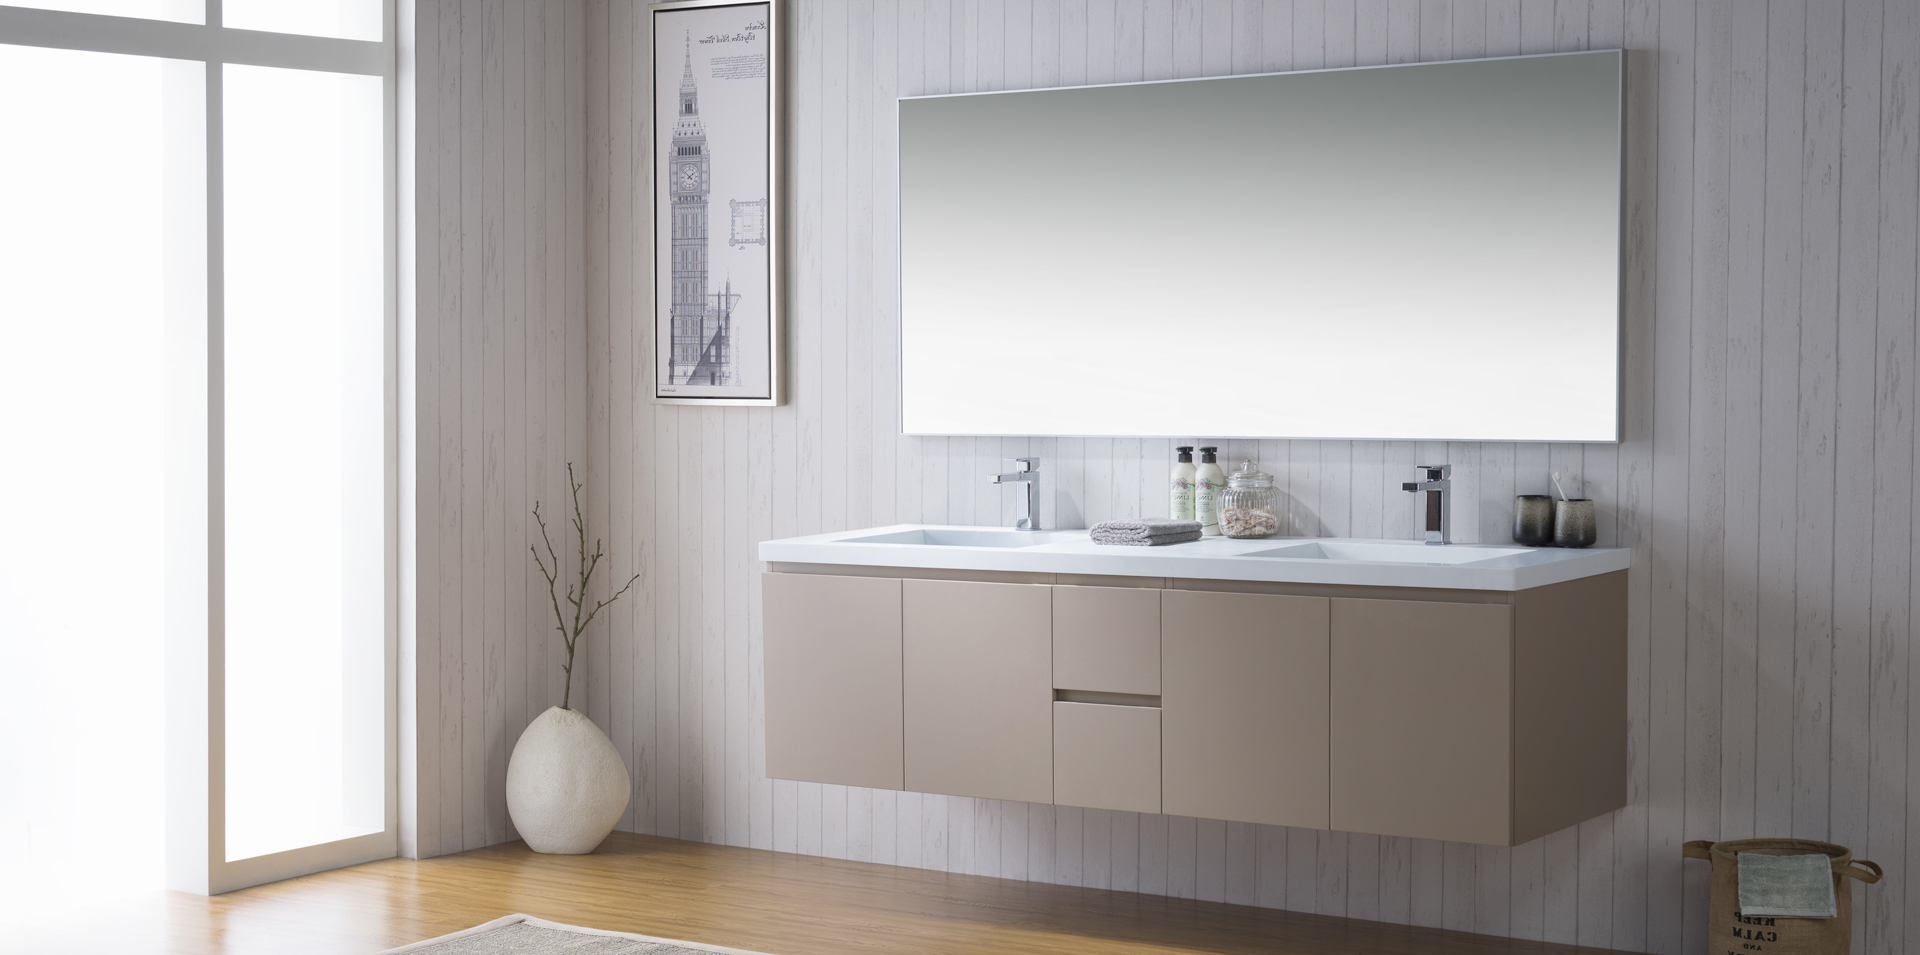 Bathroom Cabinets And Vanities modern bathroom vanities, cabinets & faucets | bathroom place miami